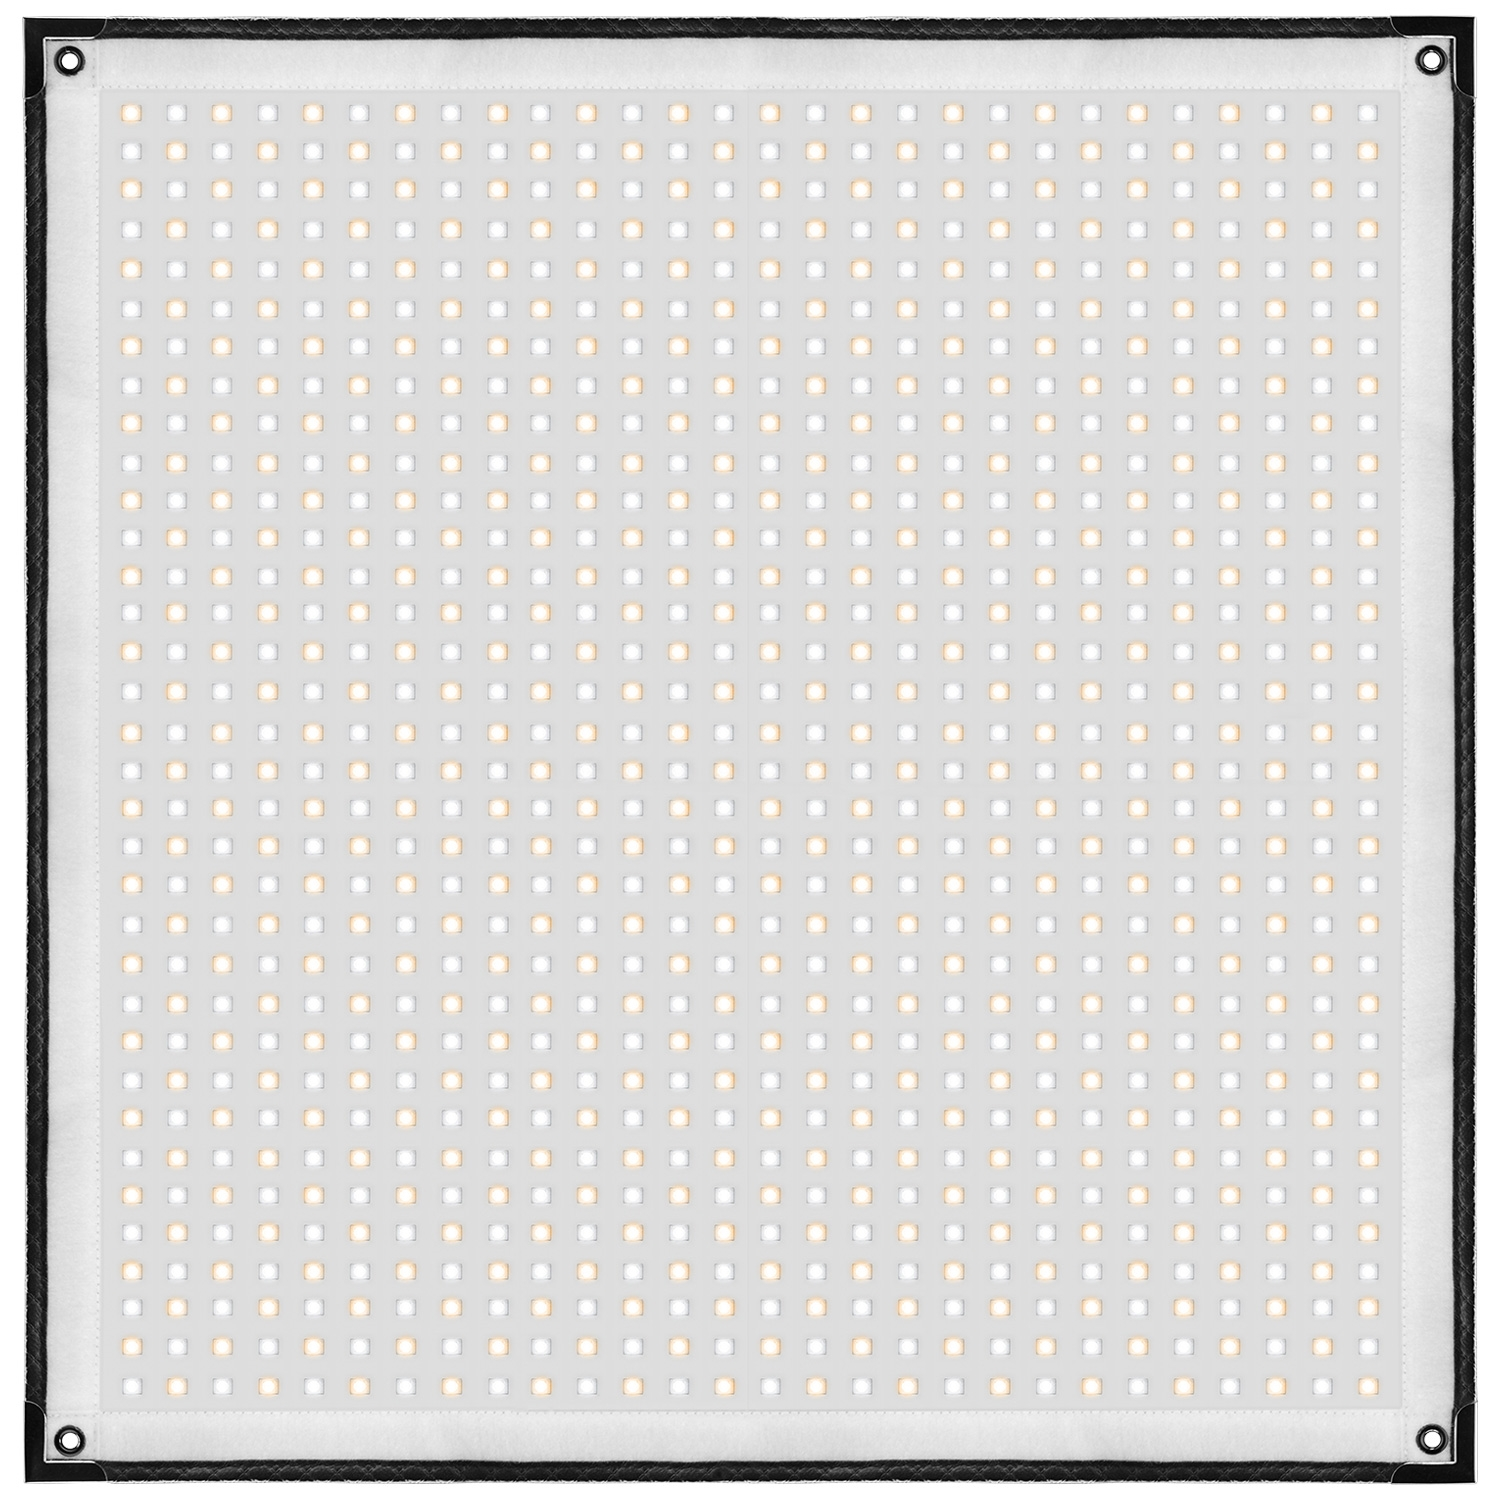 Flex Cine Bi-Color Mat (2' x 2')